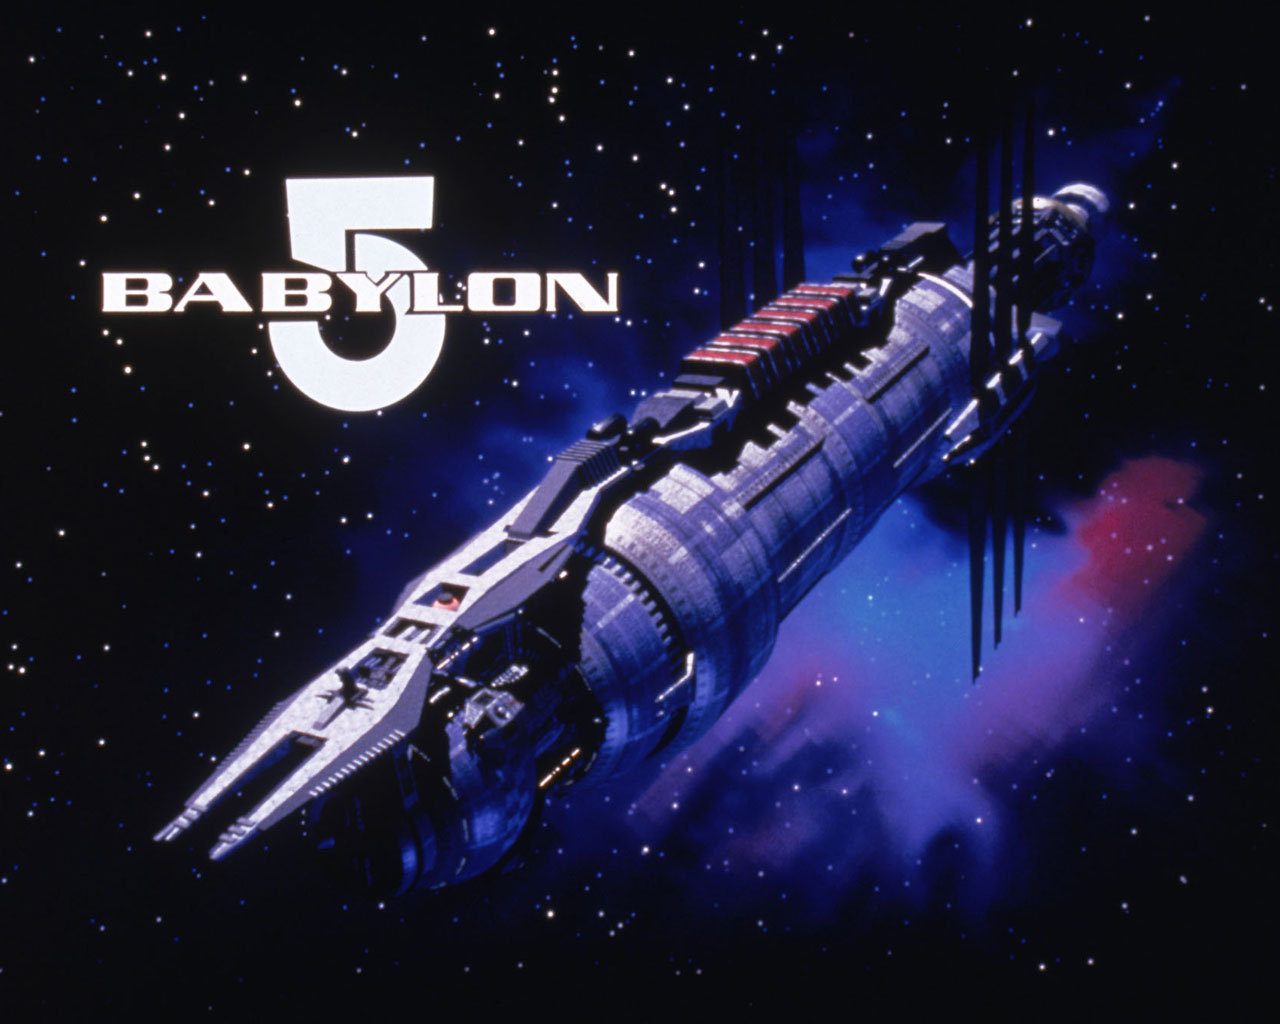 1280x1024 > Babylon 5 Wallpapers